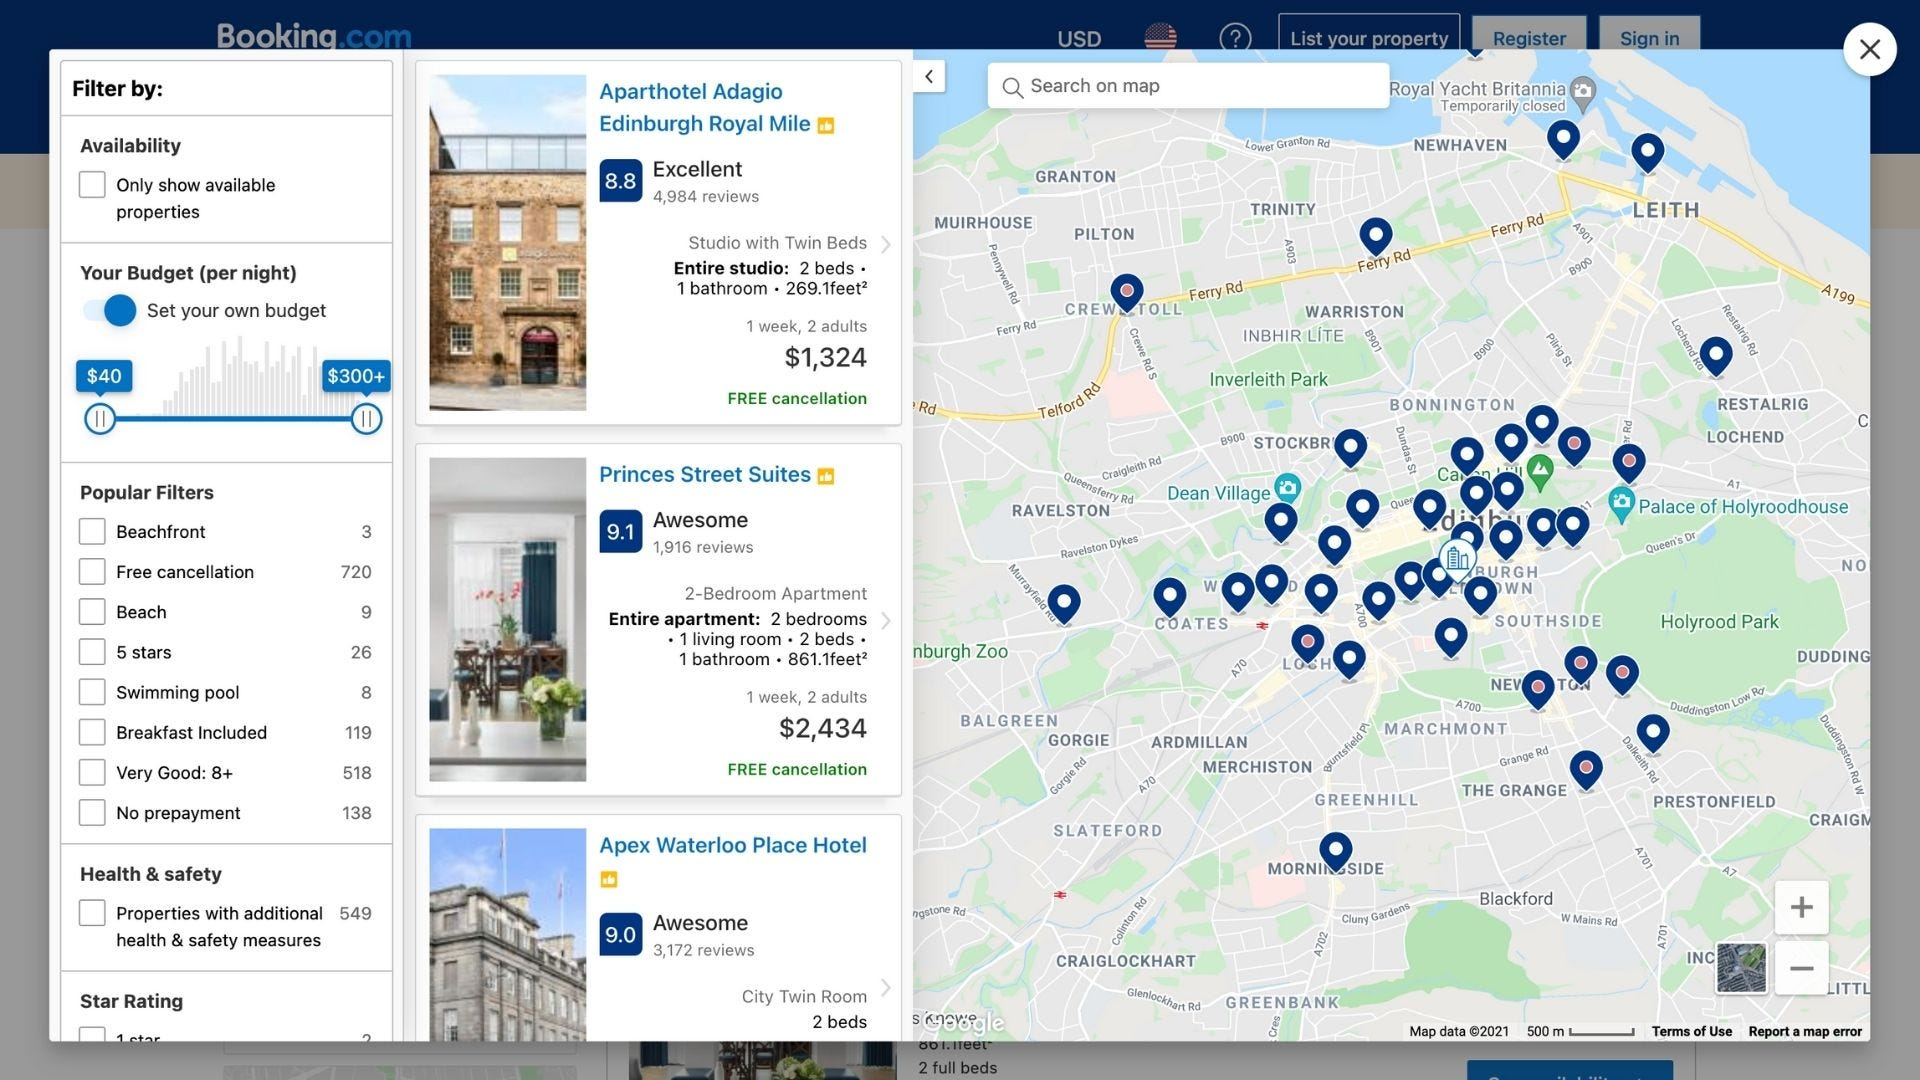 A map of different hotels and a sidebar with additional hotel information.